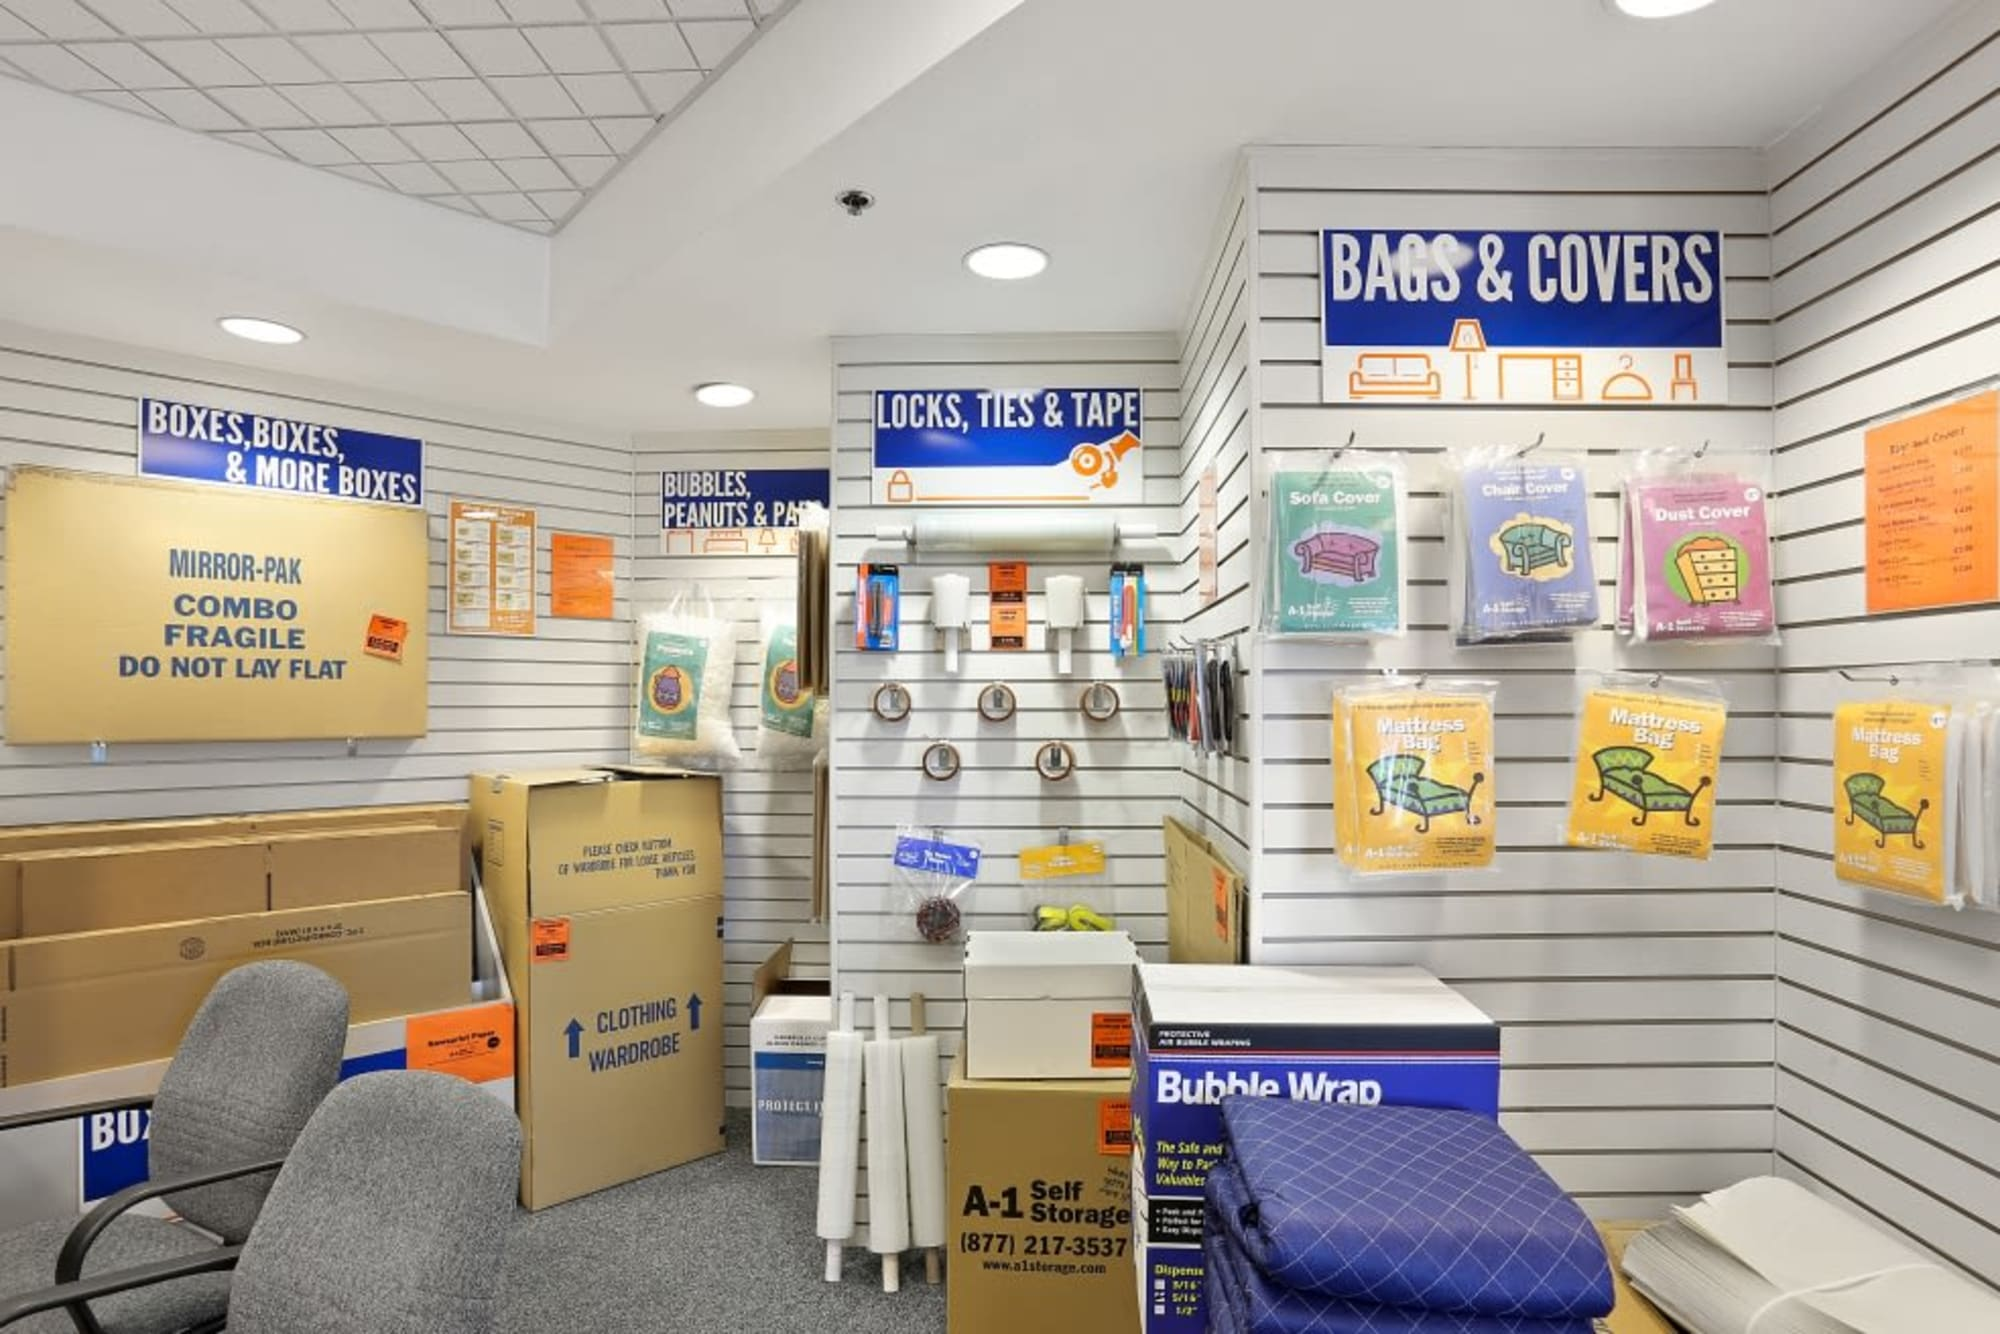 Packing supplies at A-1 Self Storage in San Diego, California